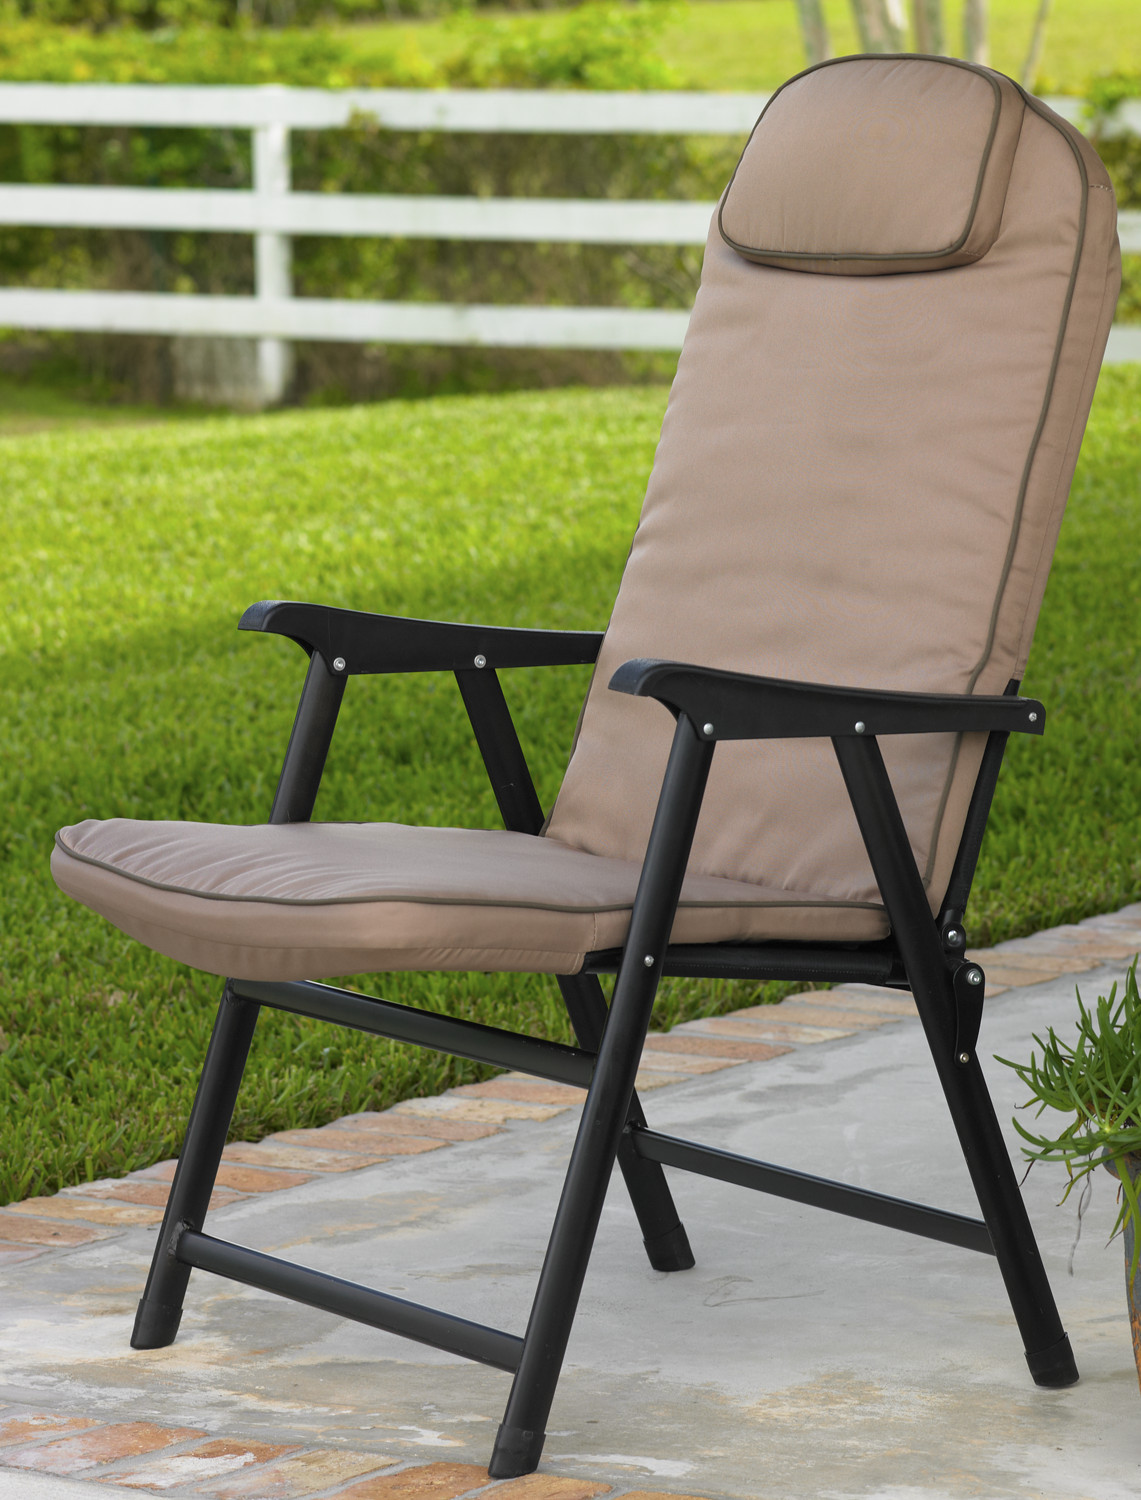 Best ideas about Folding Chairs Outdoor . Save or Pin 3 premium choices in heavy duty folding chairs – BlogBeen Now.